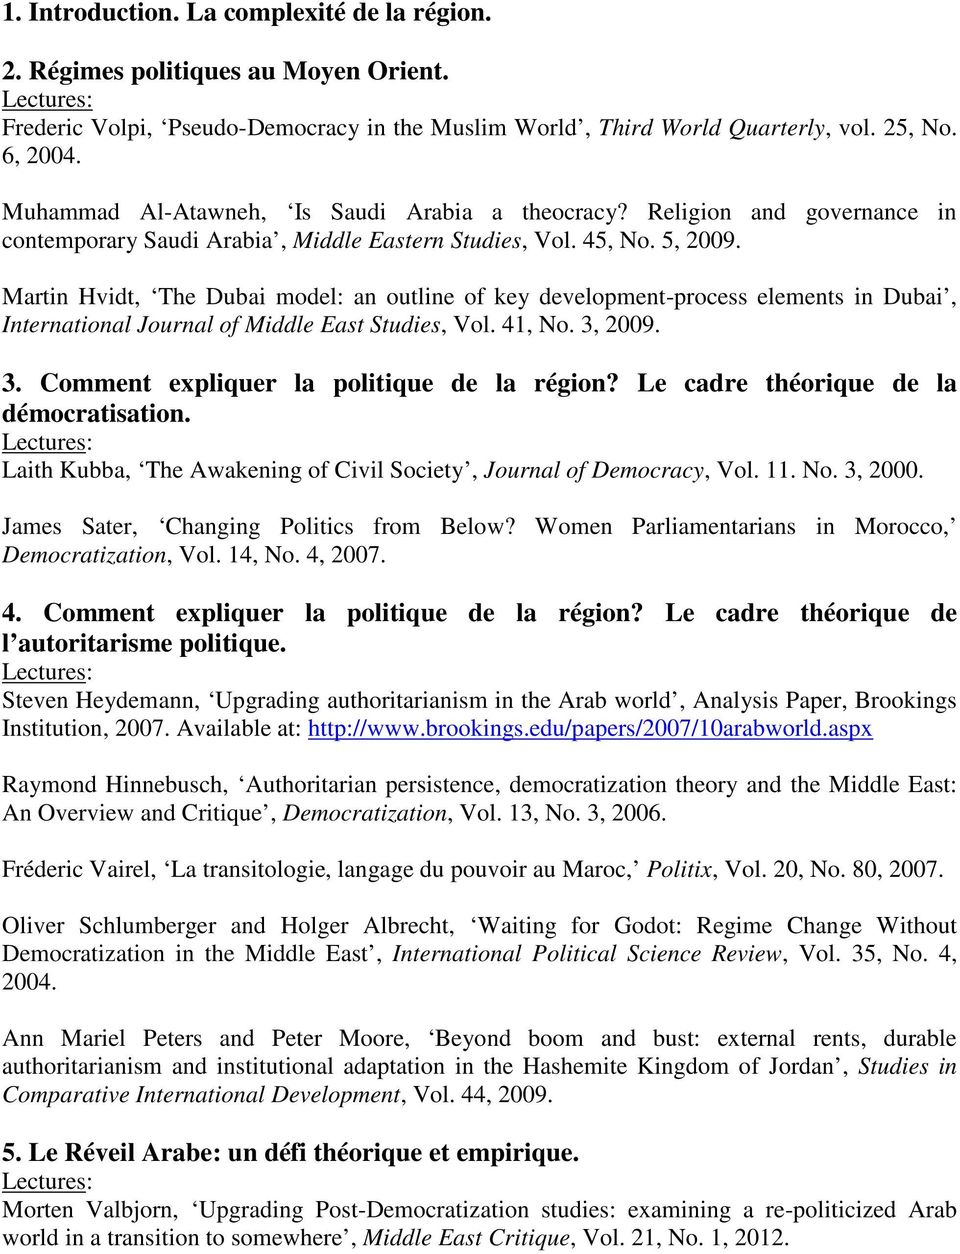 Martin Hvidt, The Dubai model: an outline of key development-process elements in Dubai, International Journal of Middle East Studies, Vol. 41, No. 3, 2009. 3. Comment expliquer la politique de la région?